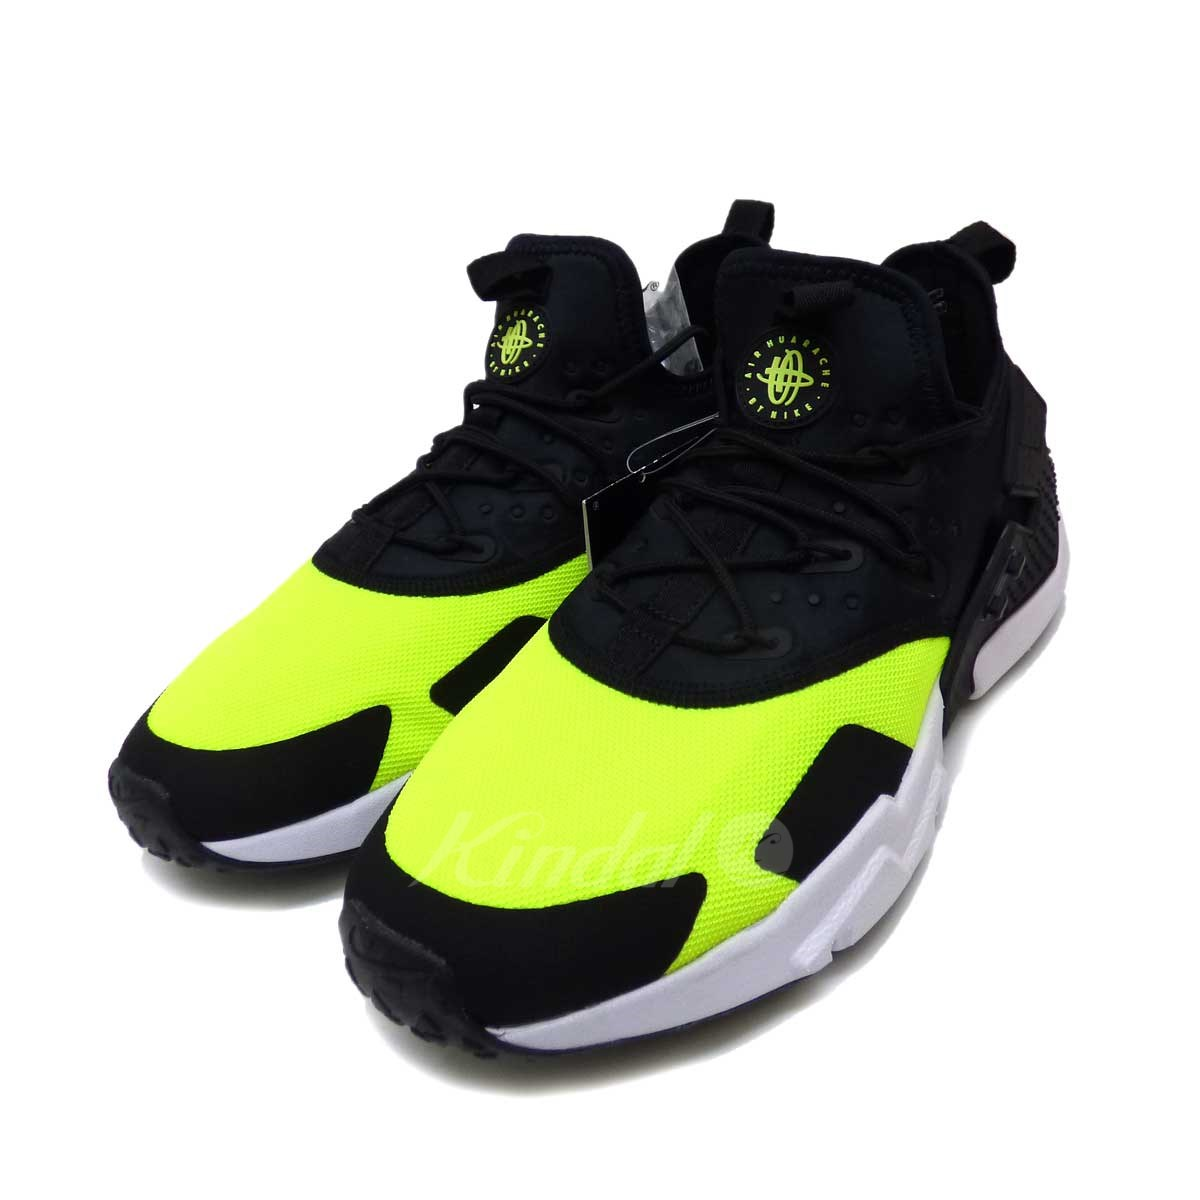 new products fa424 852a2 NIKE AIR HUARACHE DRIFT sneakers black X light green size: 29 (Nike)